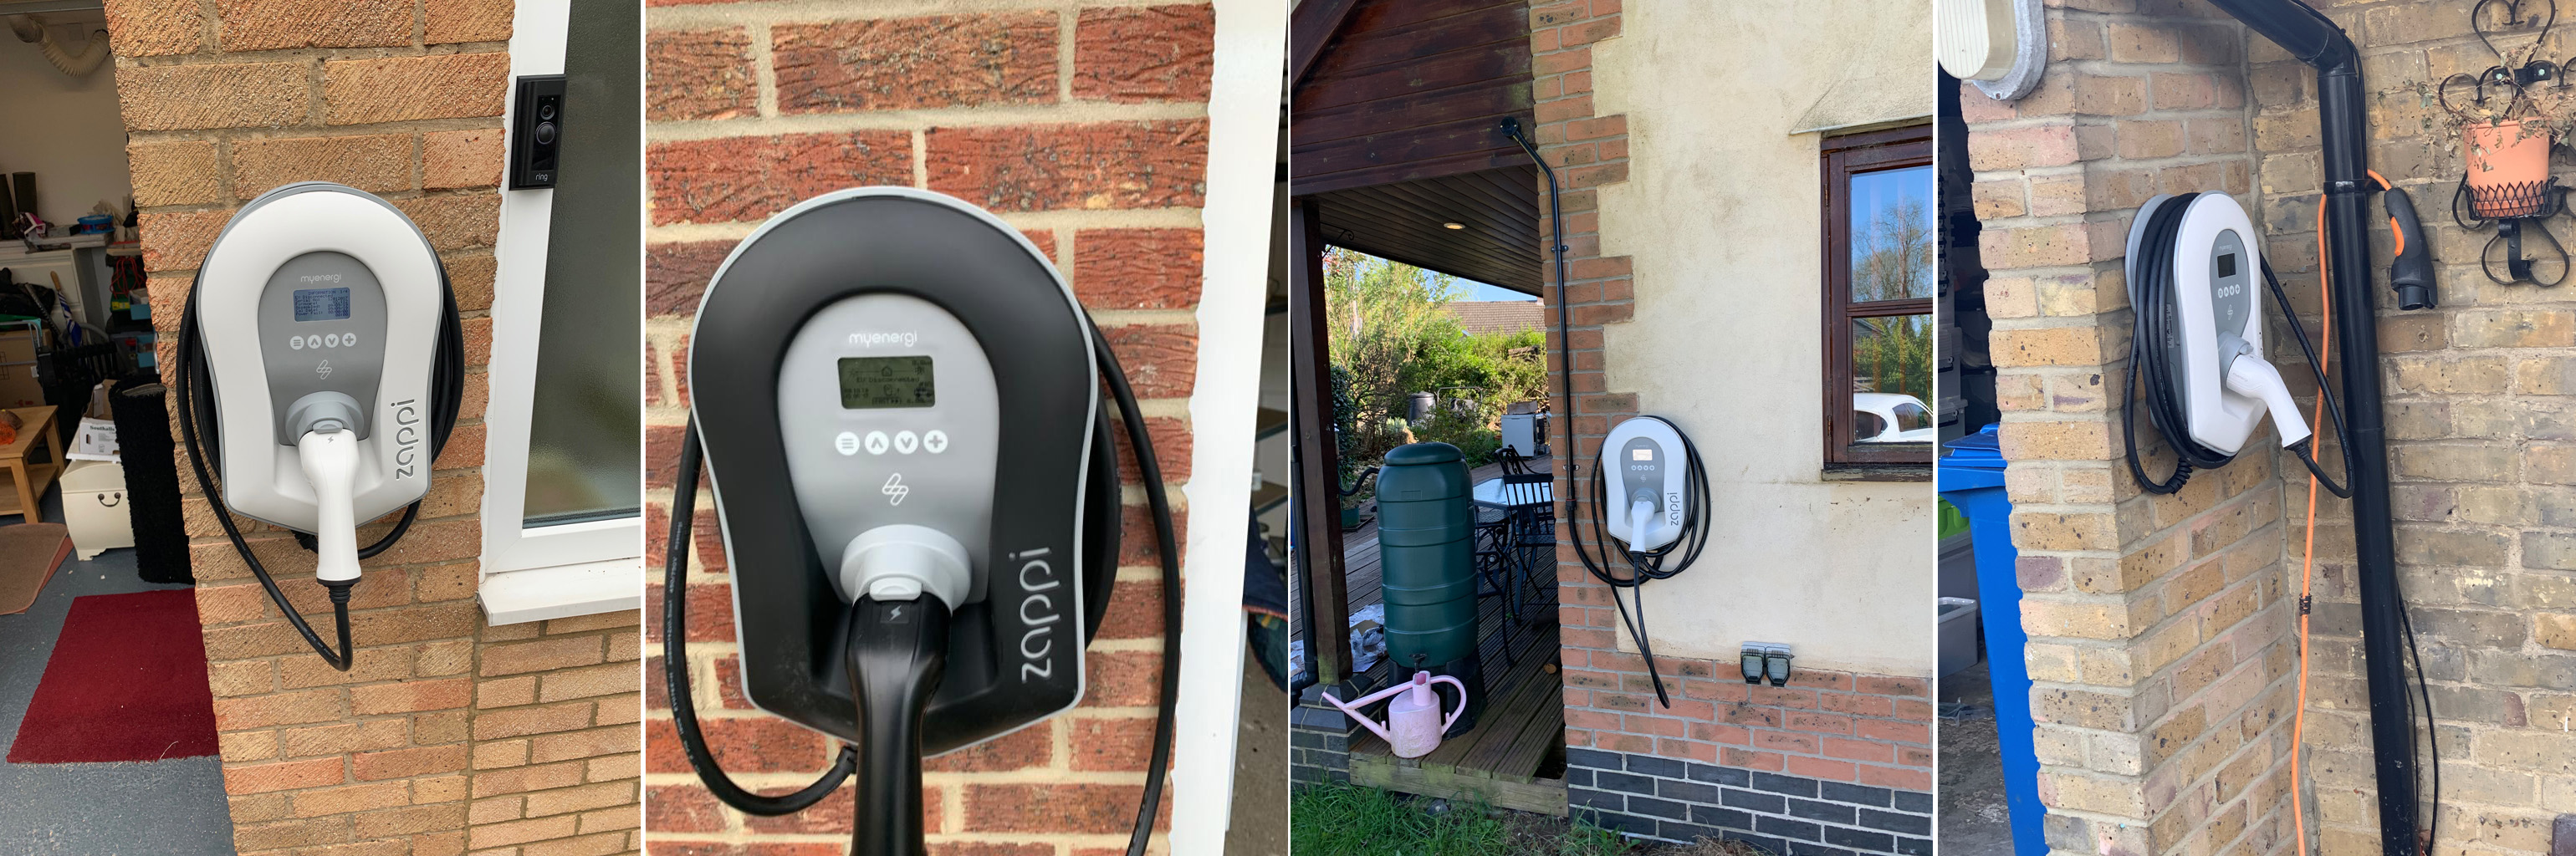 Some of the Zappis we have installed (Image: Tanjent)